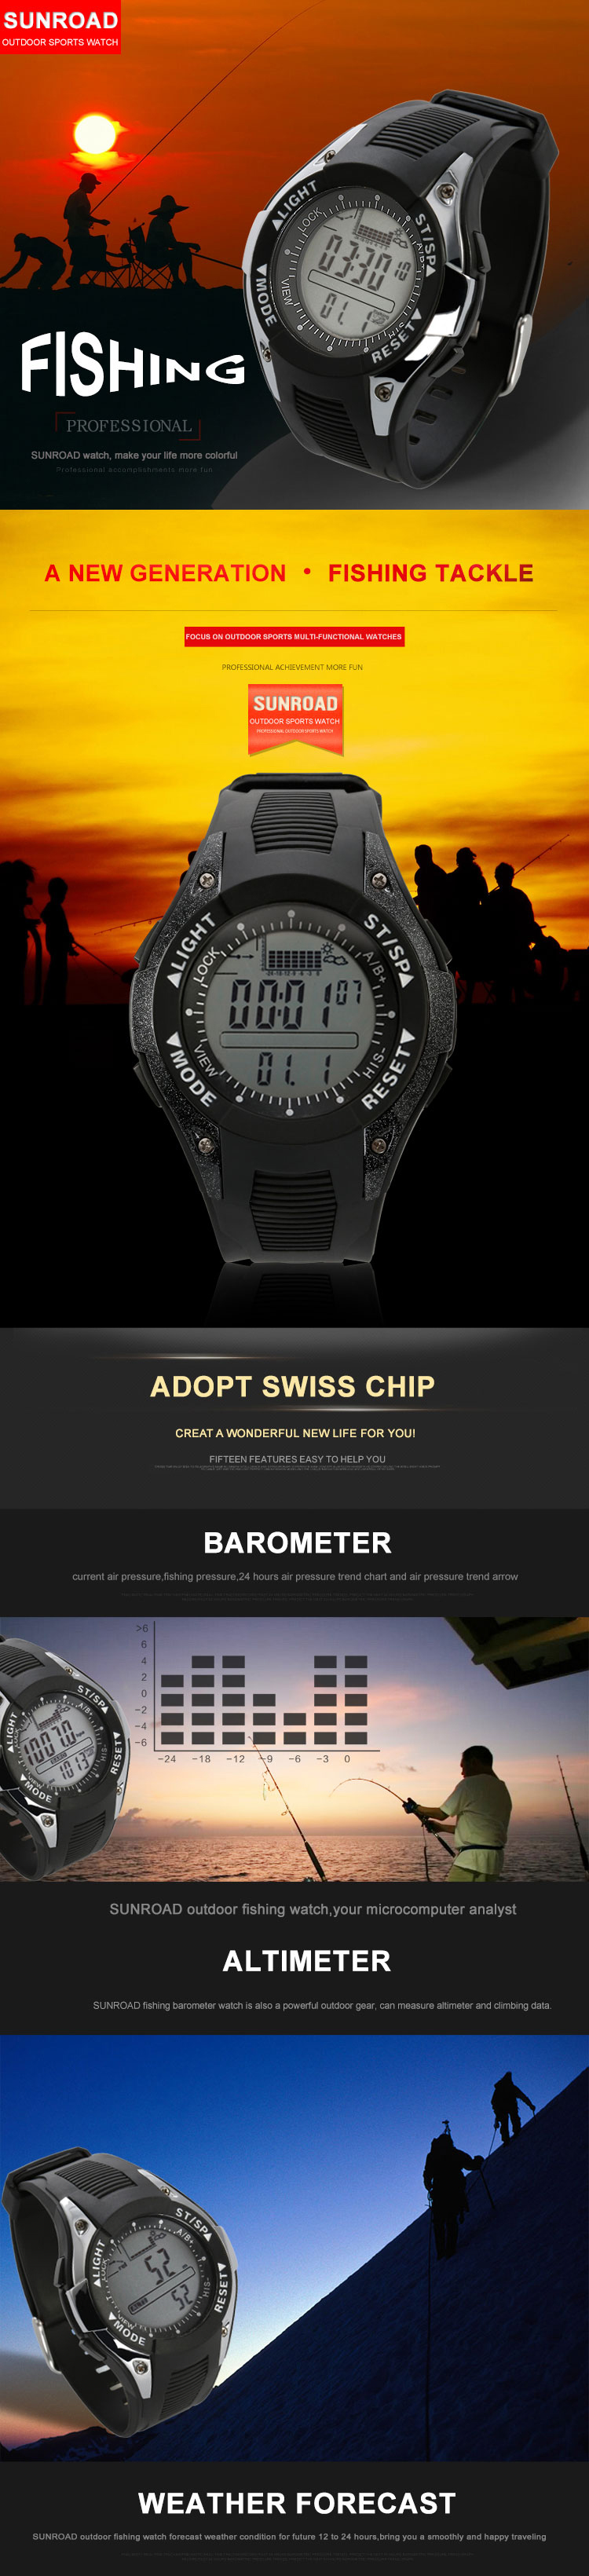 SUNROAD FX702A Fishing Barometer Watch Multifunctional Barometer Altimeter Thermometer Smart Watch